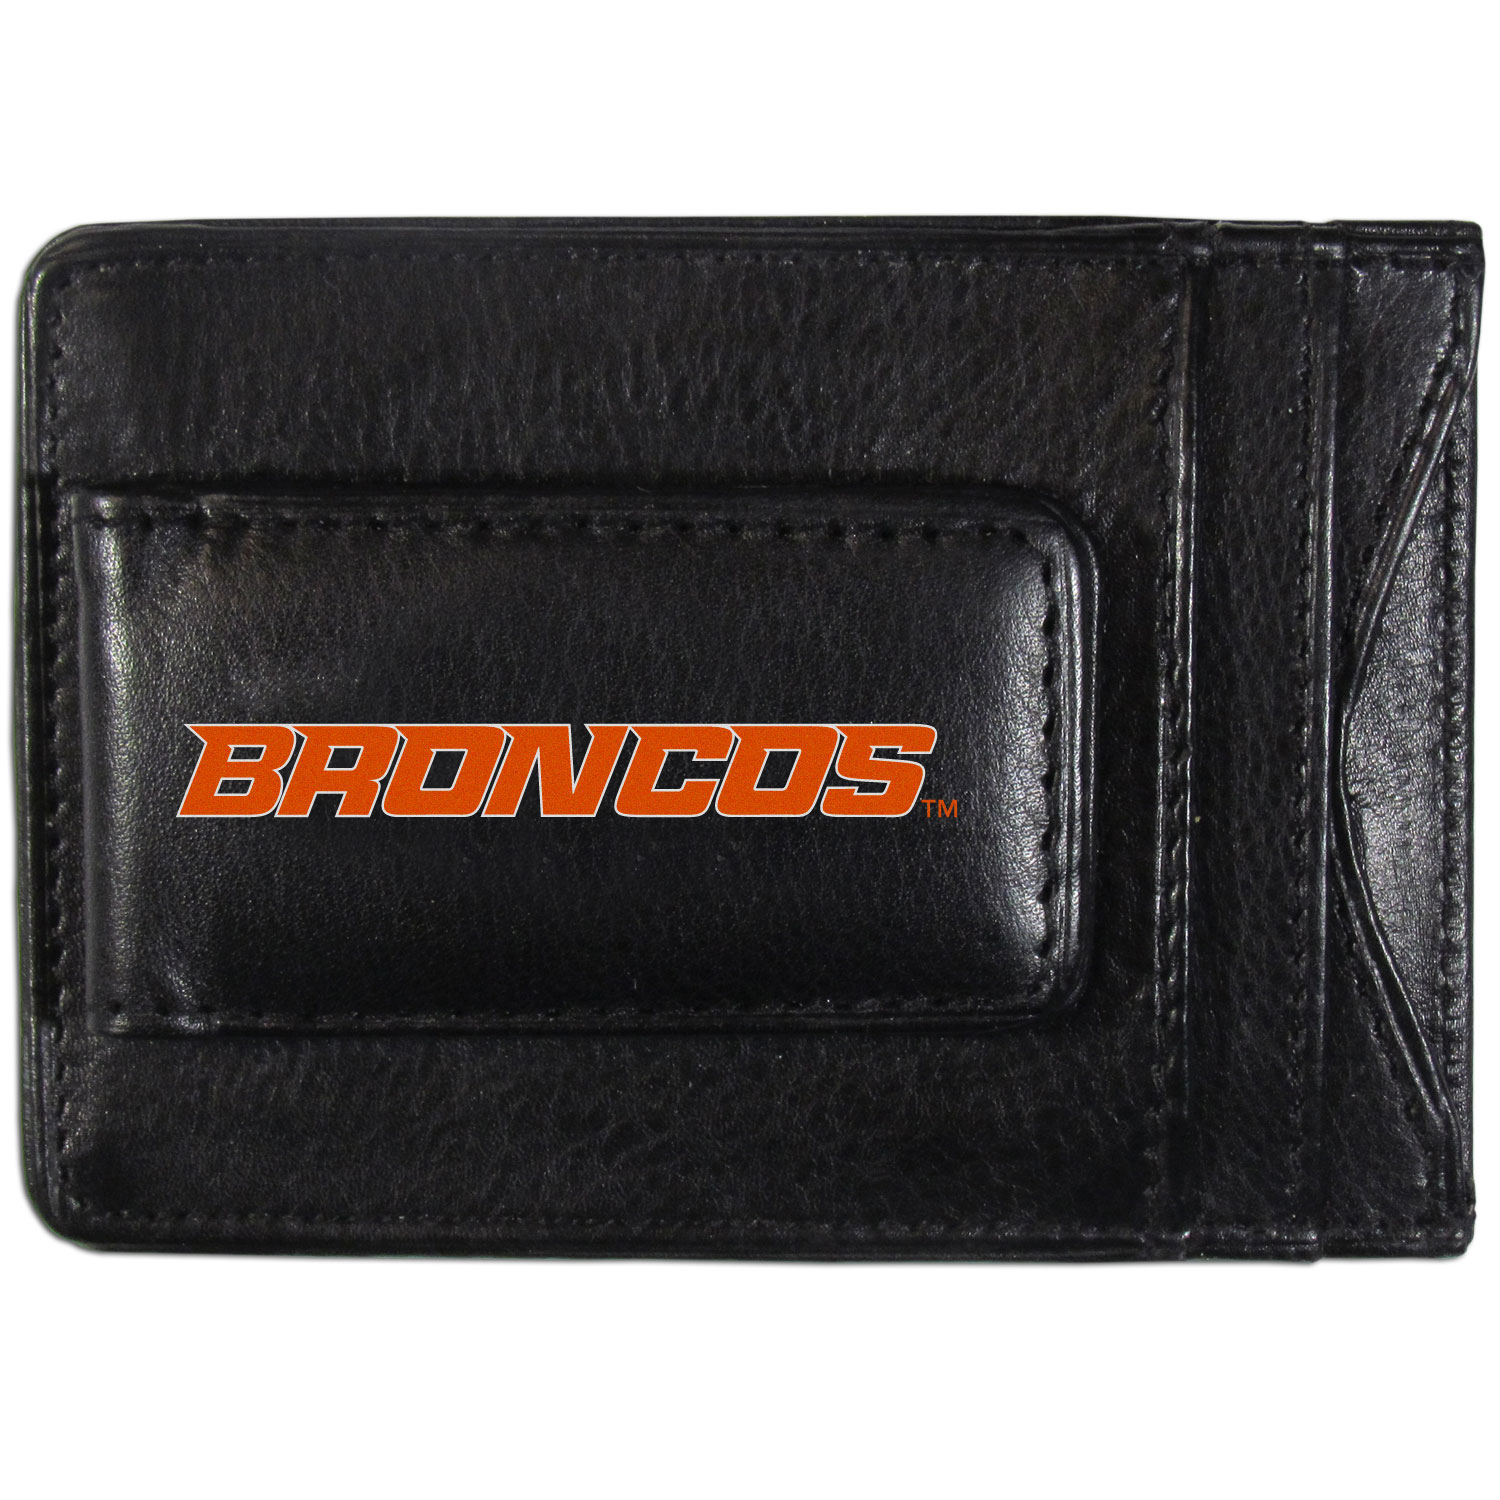 Boise St. Broncos Logo Leather Cash and Cardholder - This super slim leather wallet lets you have all the benefits of a money clip while keeping the organization of a wallet. On one side of this front pocket wallet there is a strong, magnetic money clip to keep your cash easily accessible and the?Boise St. Broncos team logo on the front. The versatile men's accessory is a perfect addition to your fan apparel.